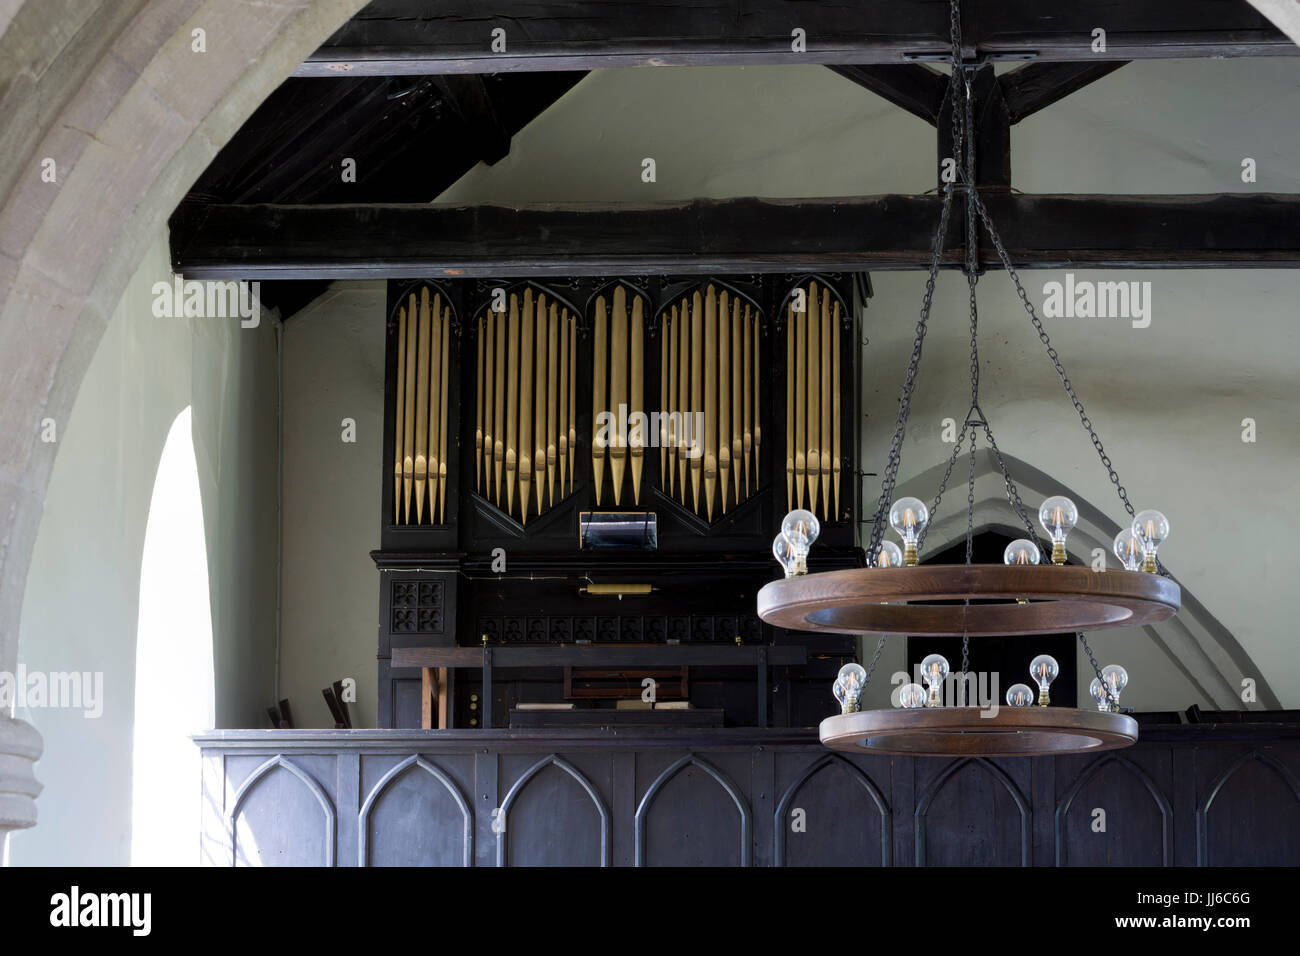 Interior view with organ, St. Mary`s Church, Ardley, Oxfordshire, UK - Stock Image